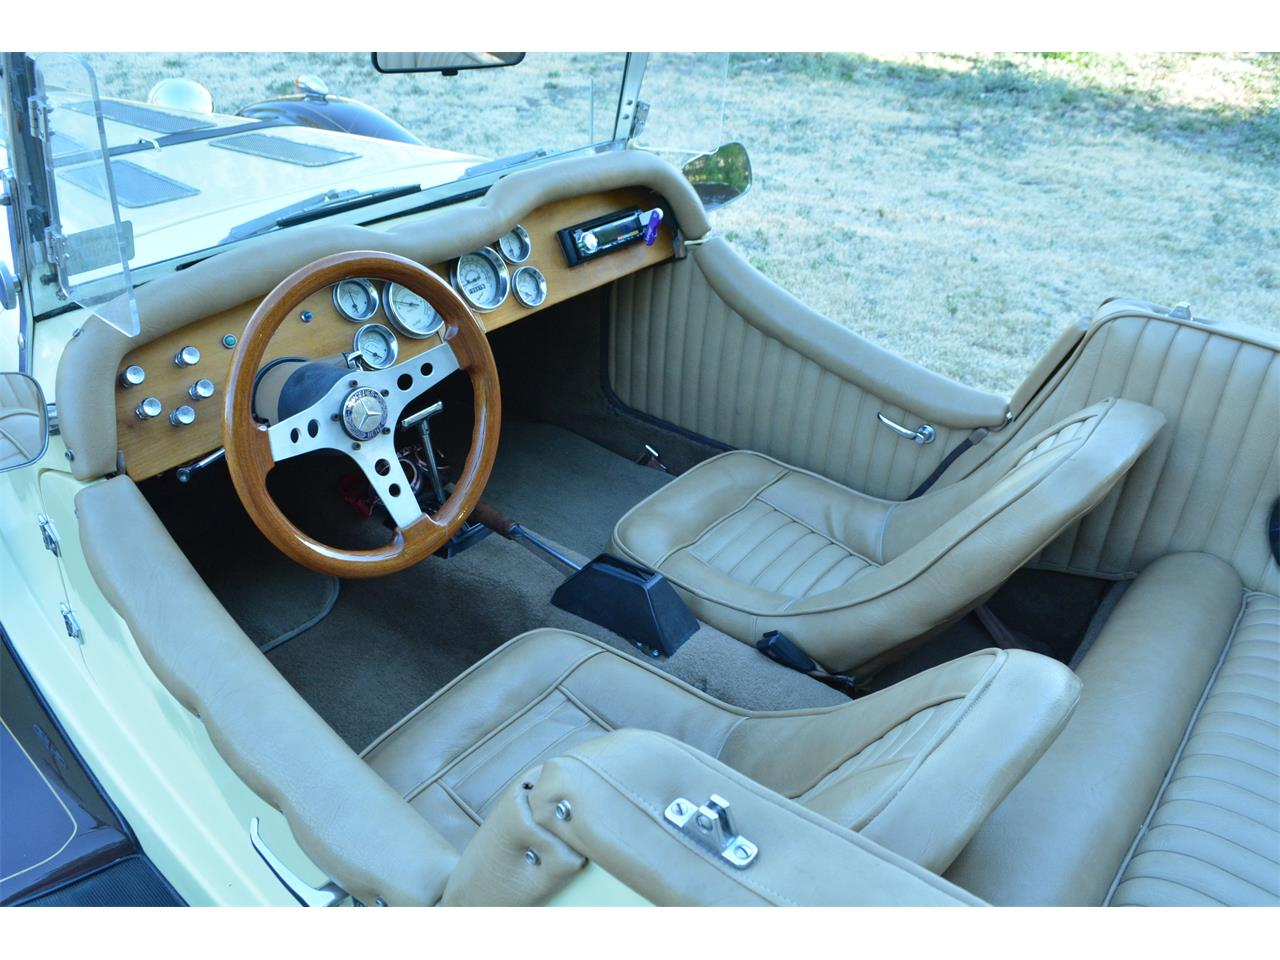 Large Picture of Classic '29 Mercedes-Benz SSK Replica - $10,000.00 Offered by Robz Ragz - LAJ0